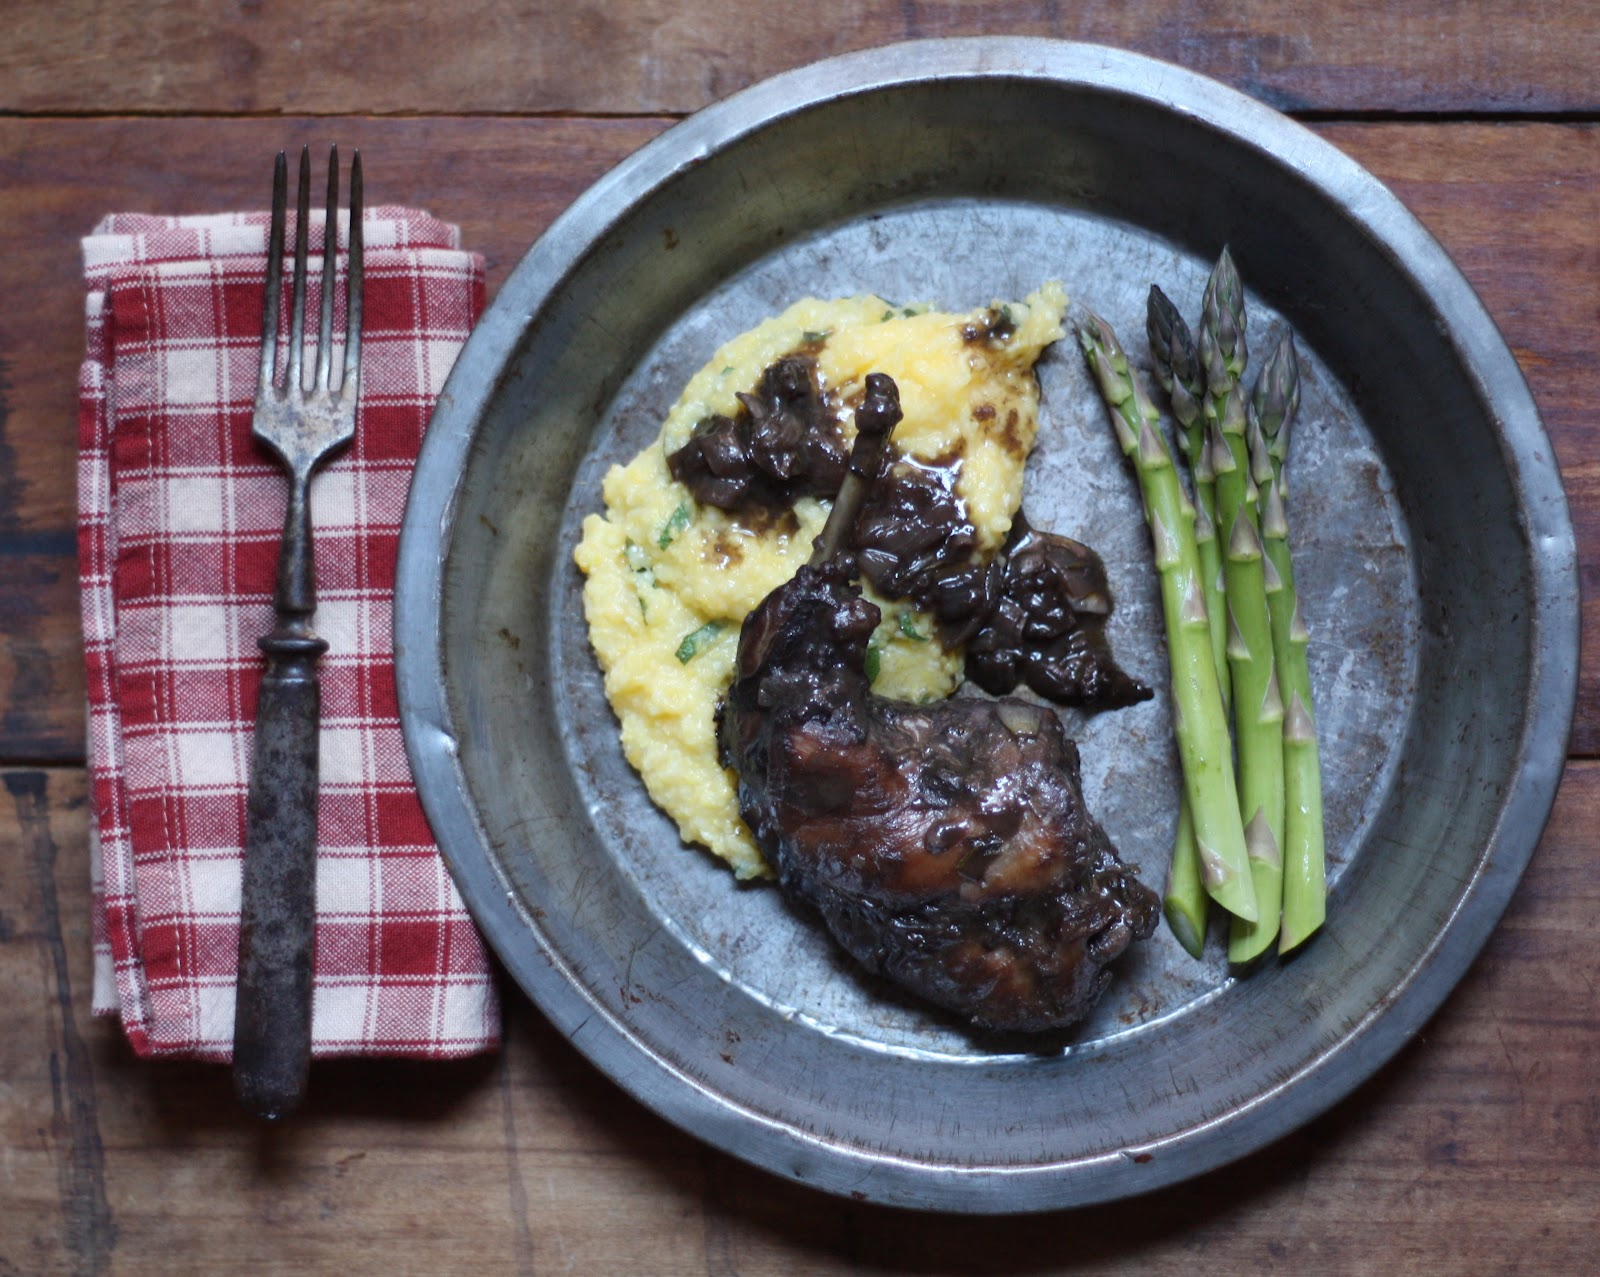 Braised Rabbit in Red Wine with a Sage Polenta